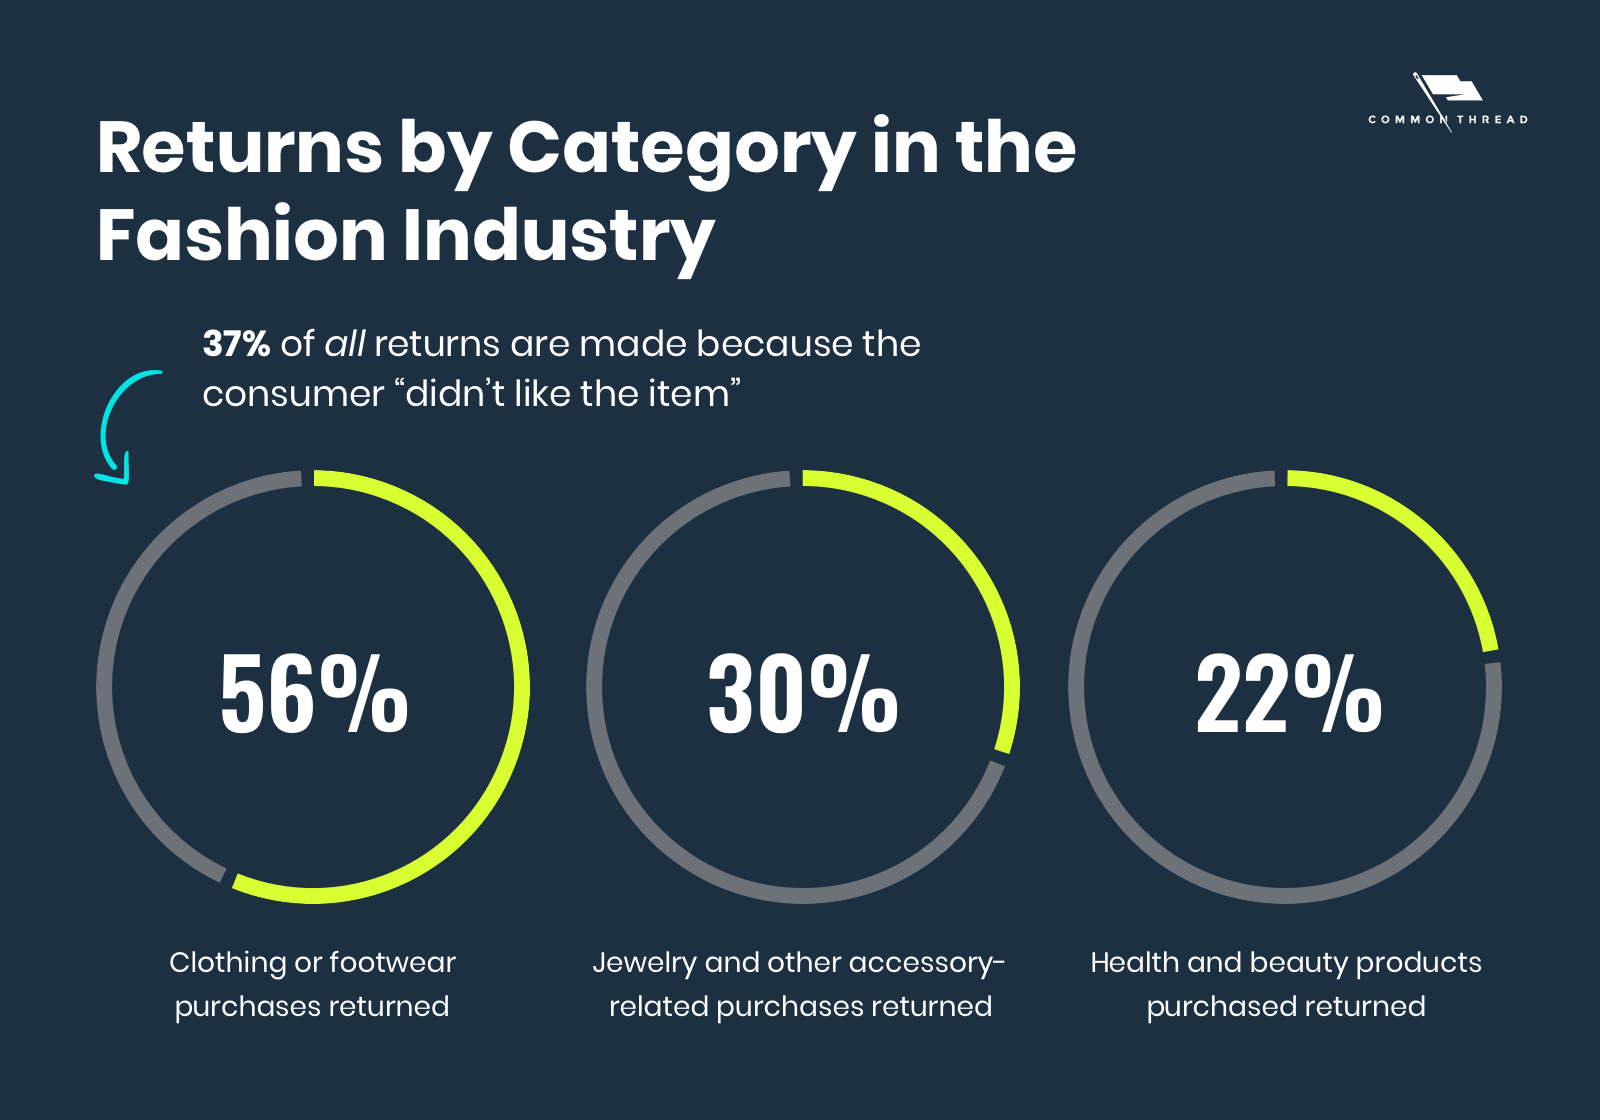 Returns by category in the fashion industry